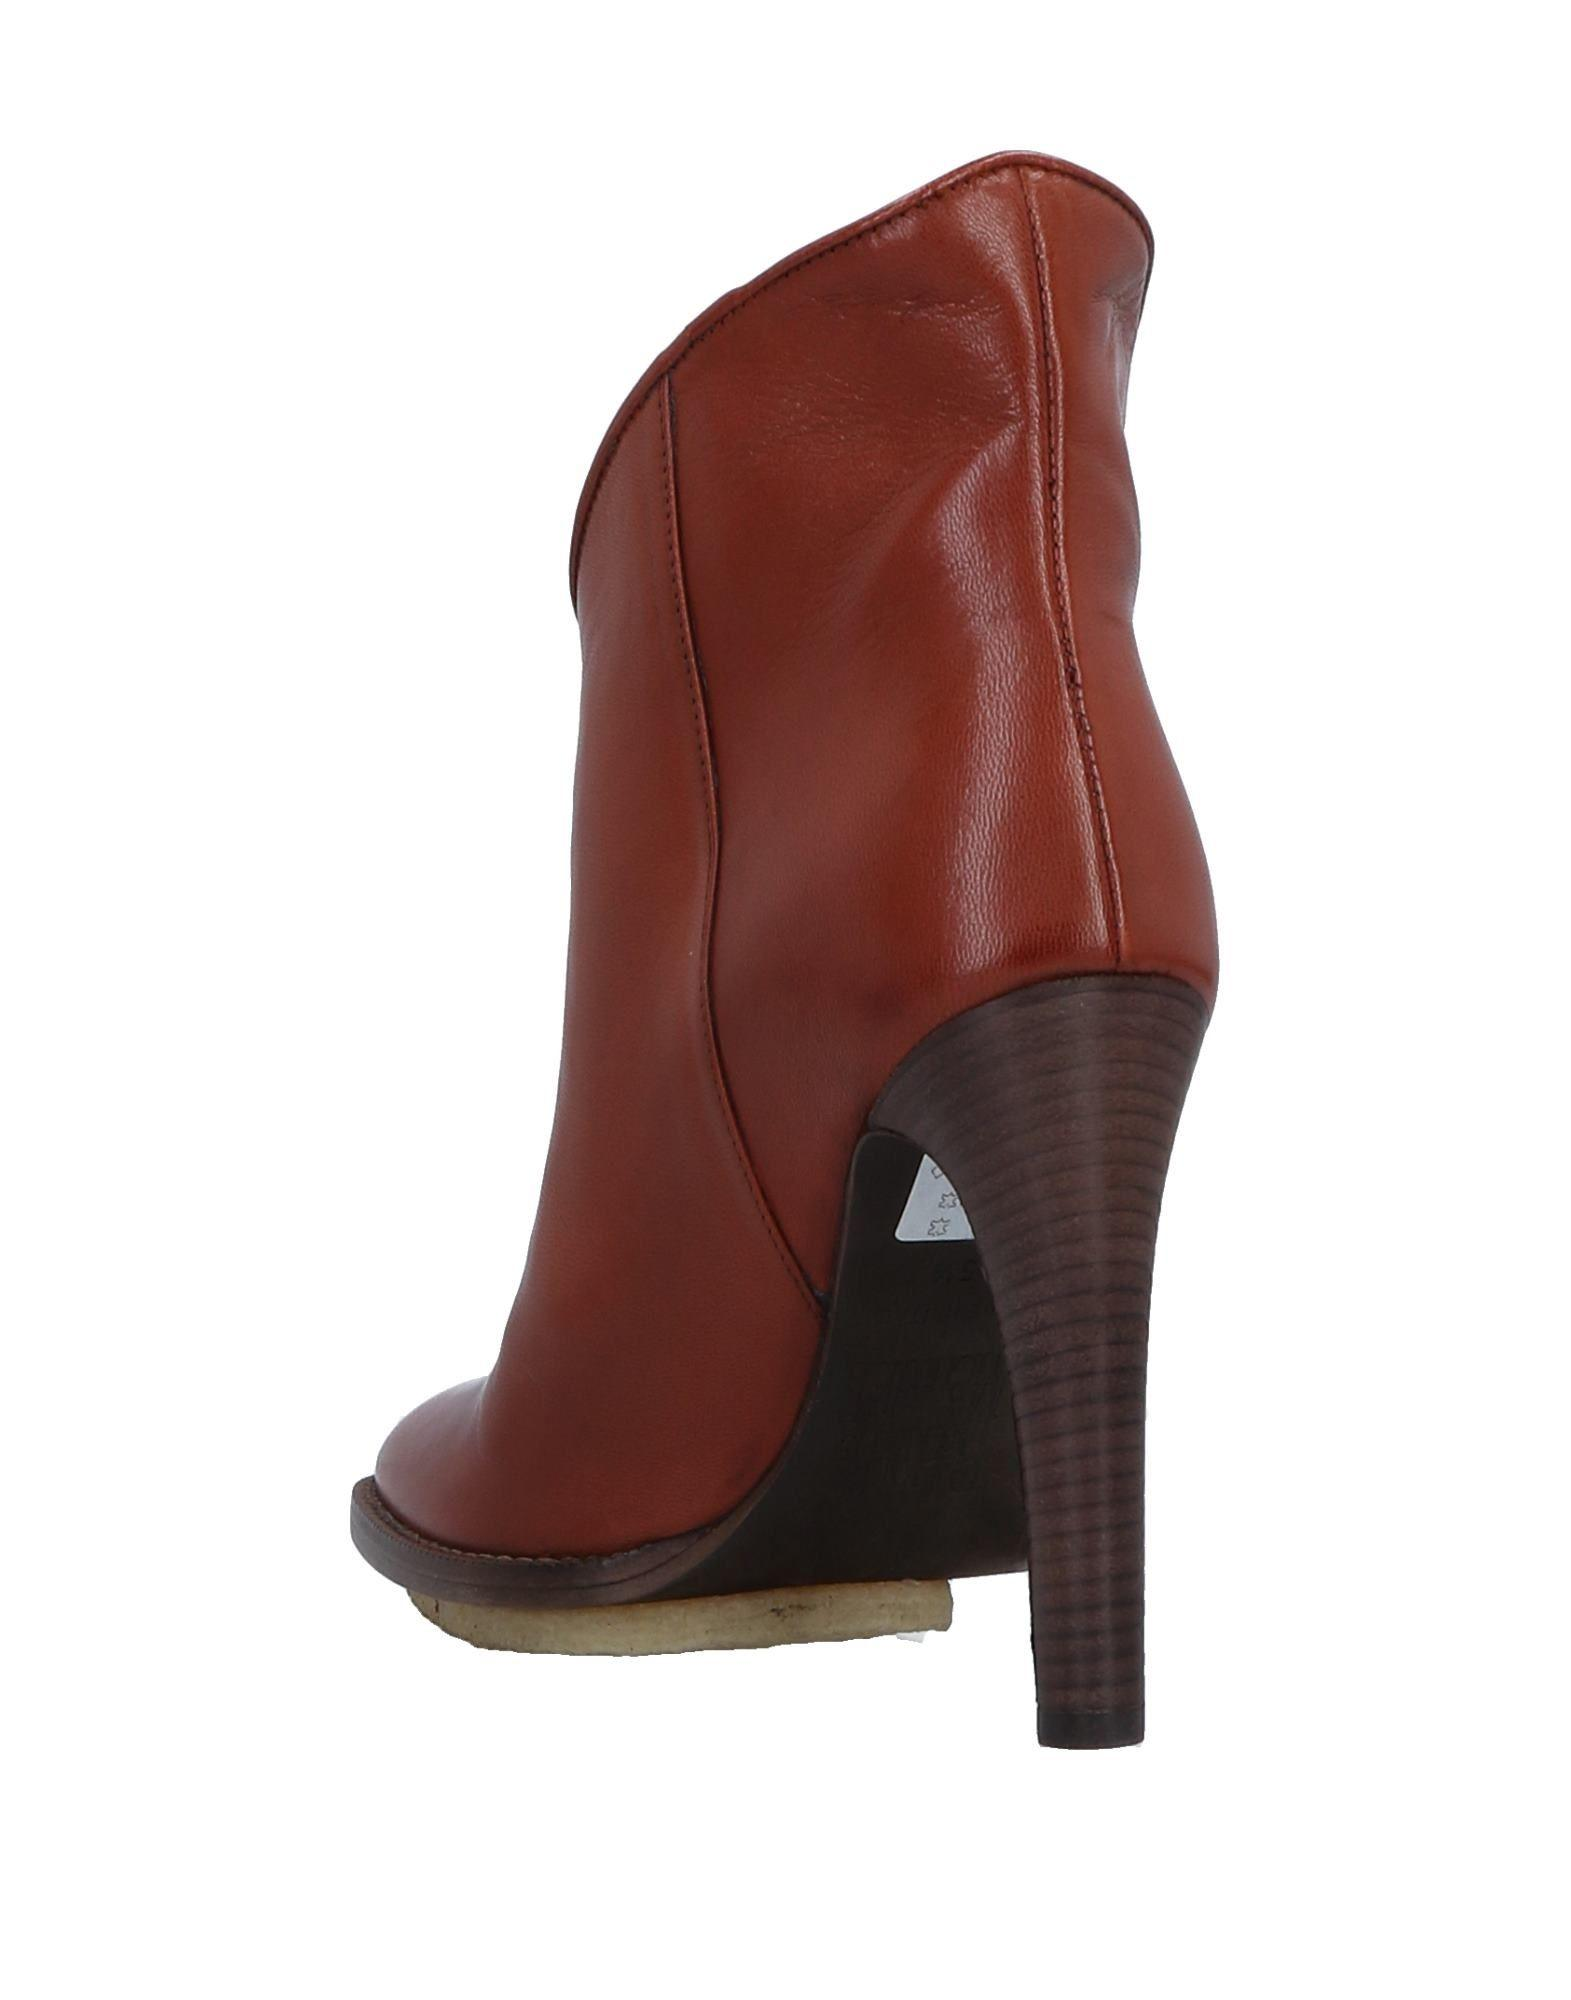 timeless design 16c4f 96906 rodolphe-menudier-Tan-Ankle-Boots.jpeg